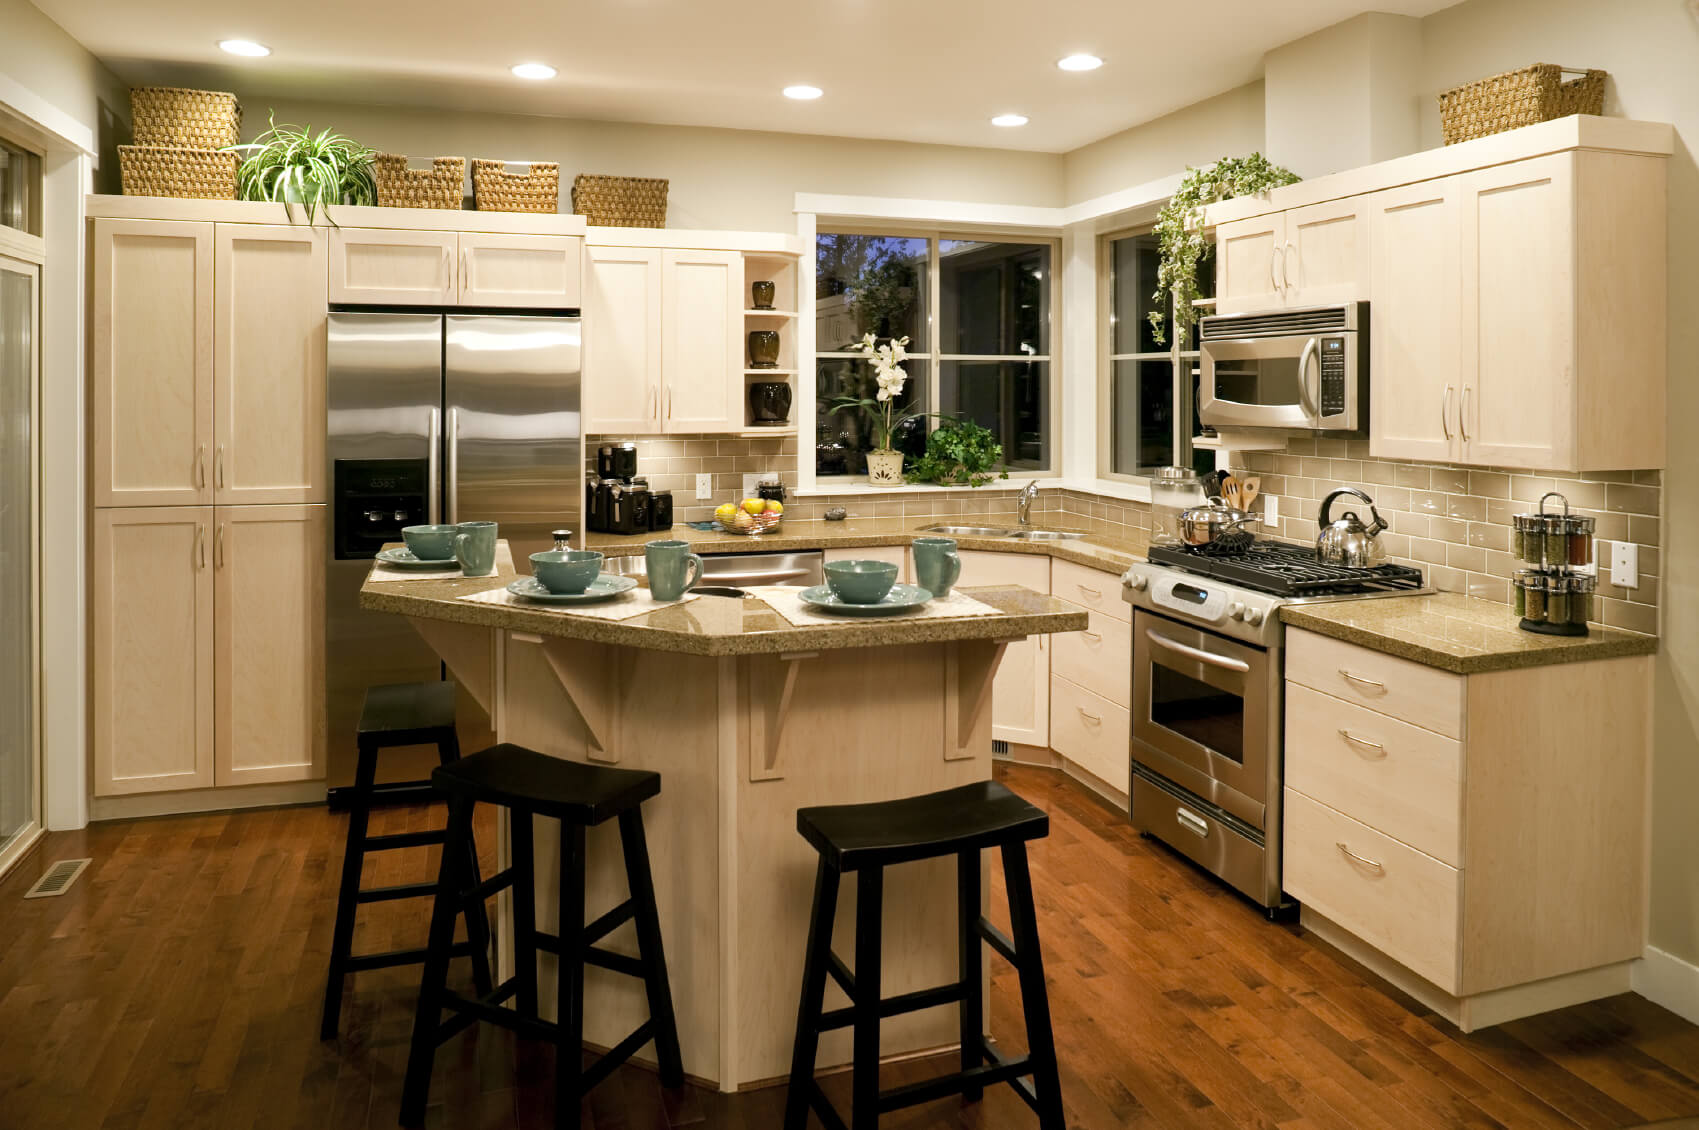 124 great kitchen design and ideas with cabinets islands